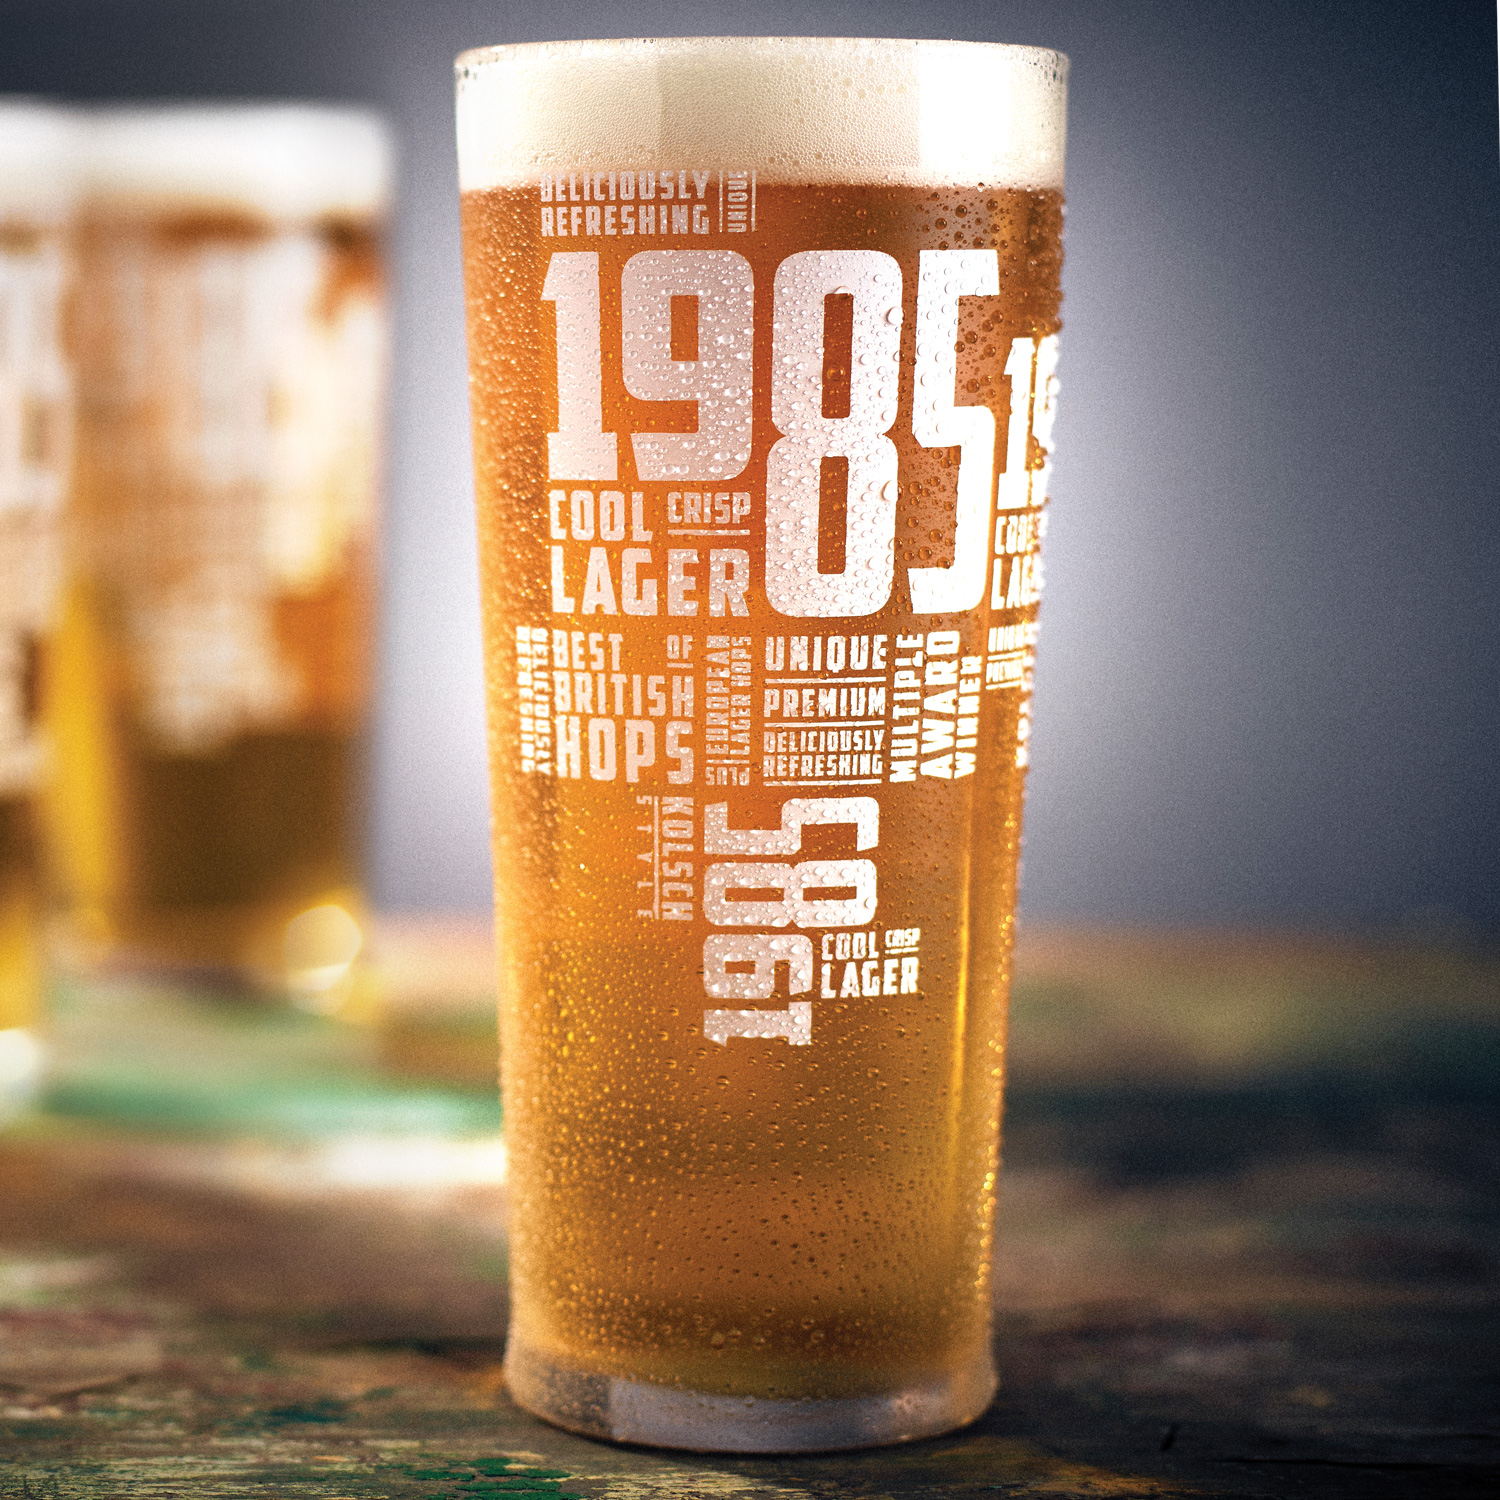 1985 pint glass